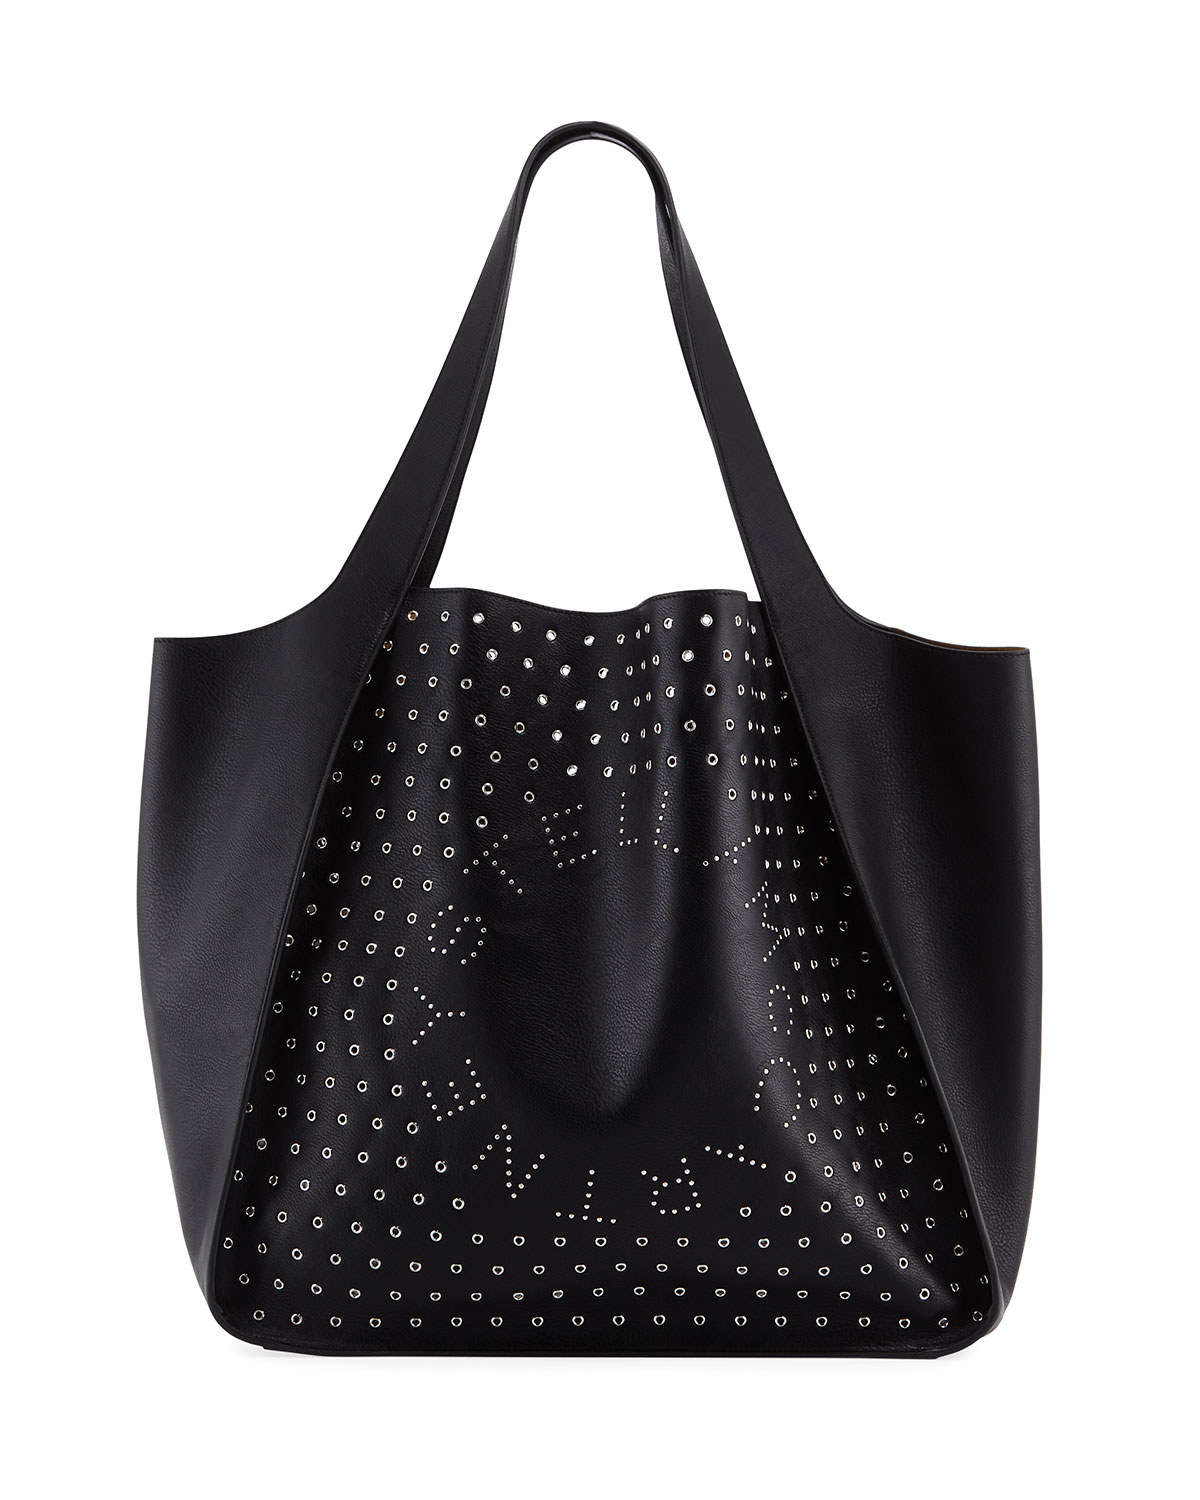 23e0b71a99 Stella McCartney Large Logo Tote Bag with Eyelets and Studs